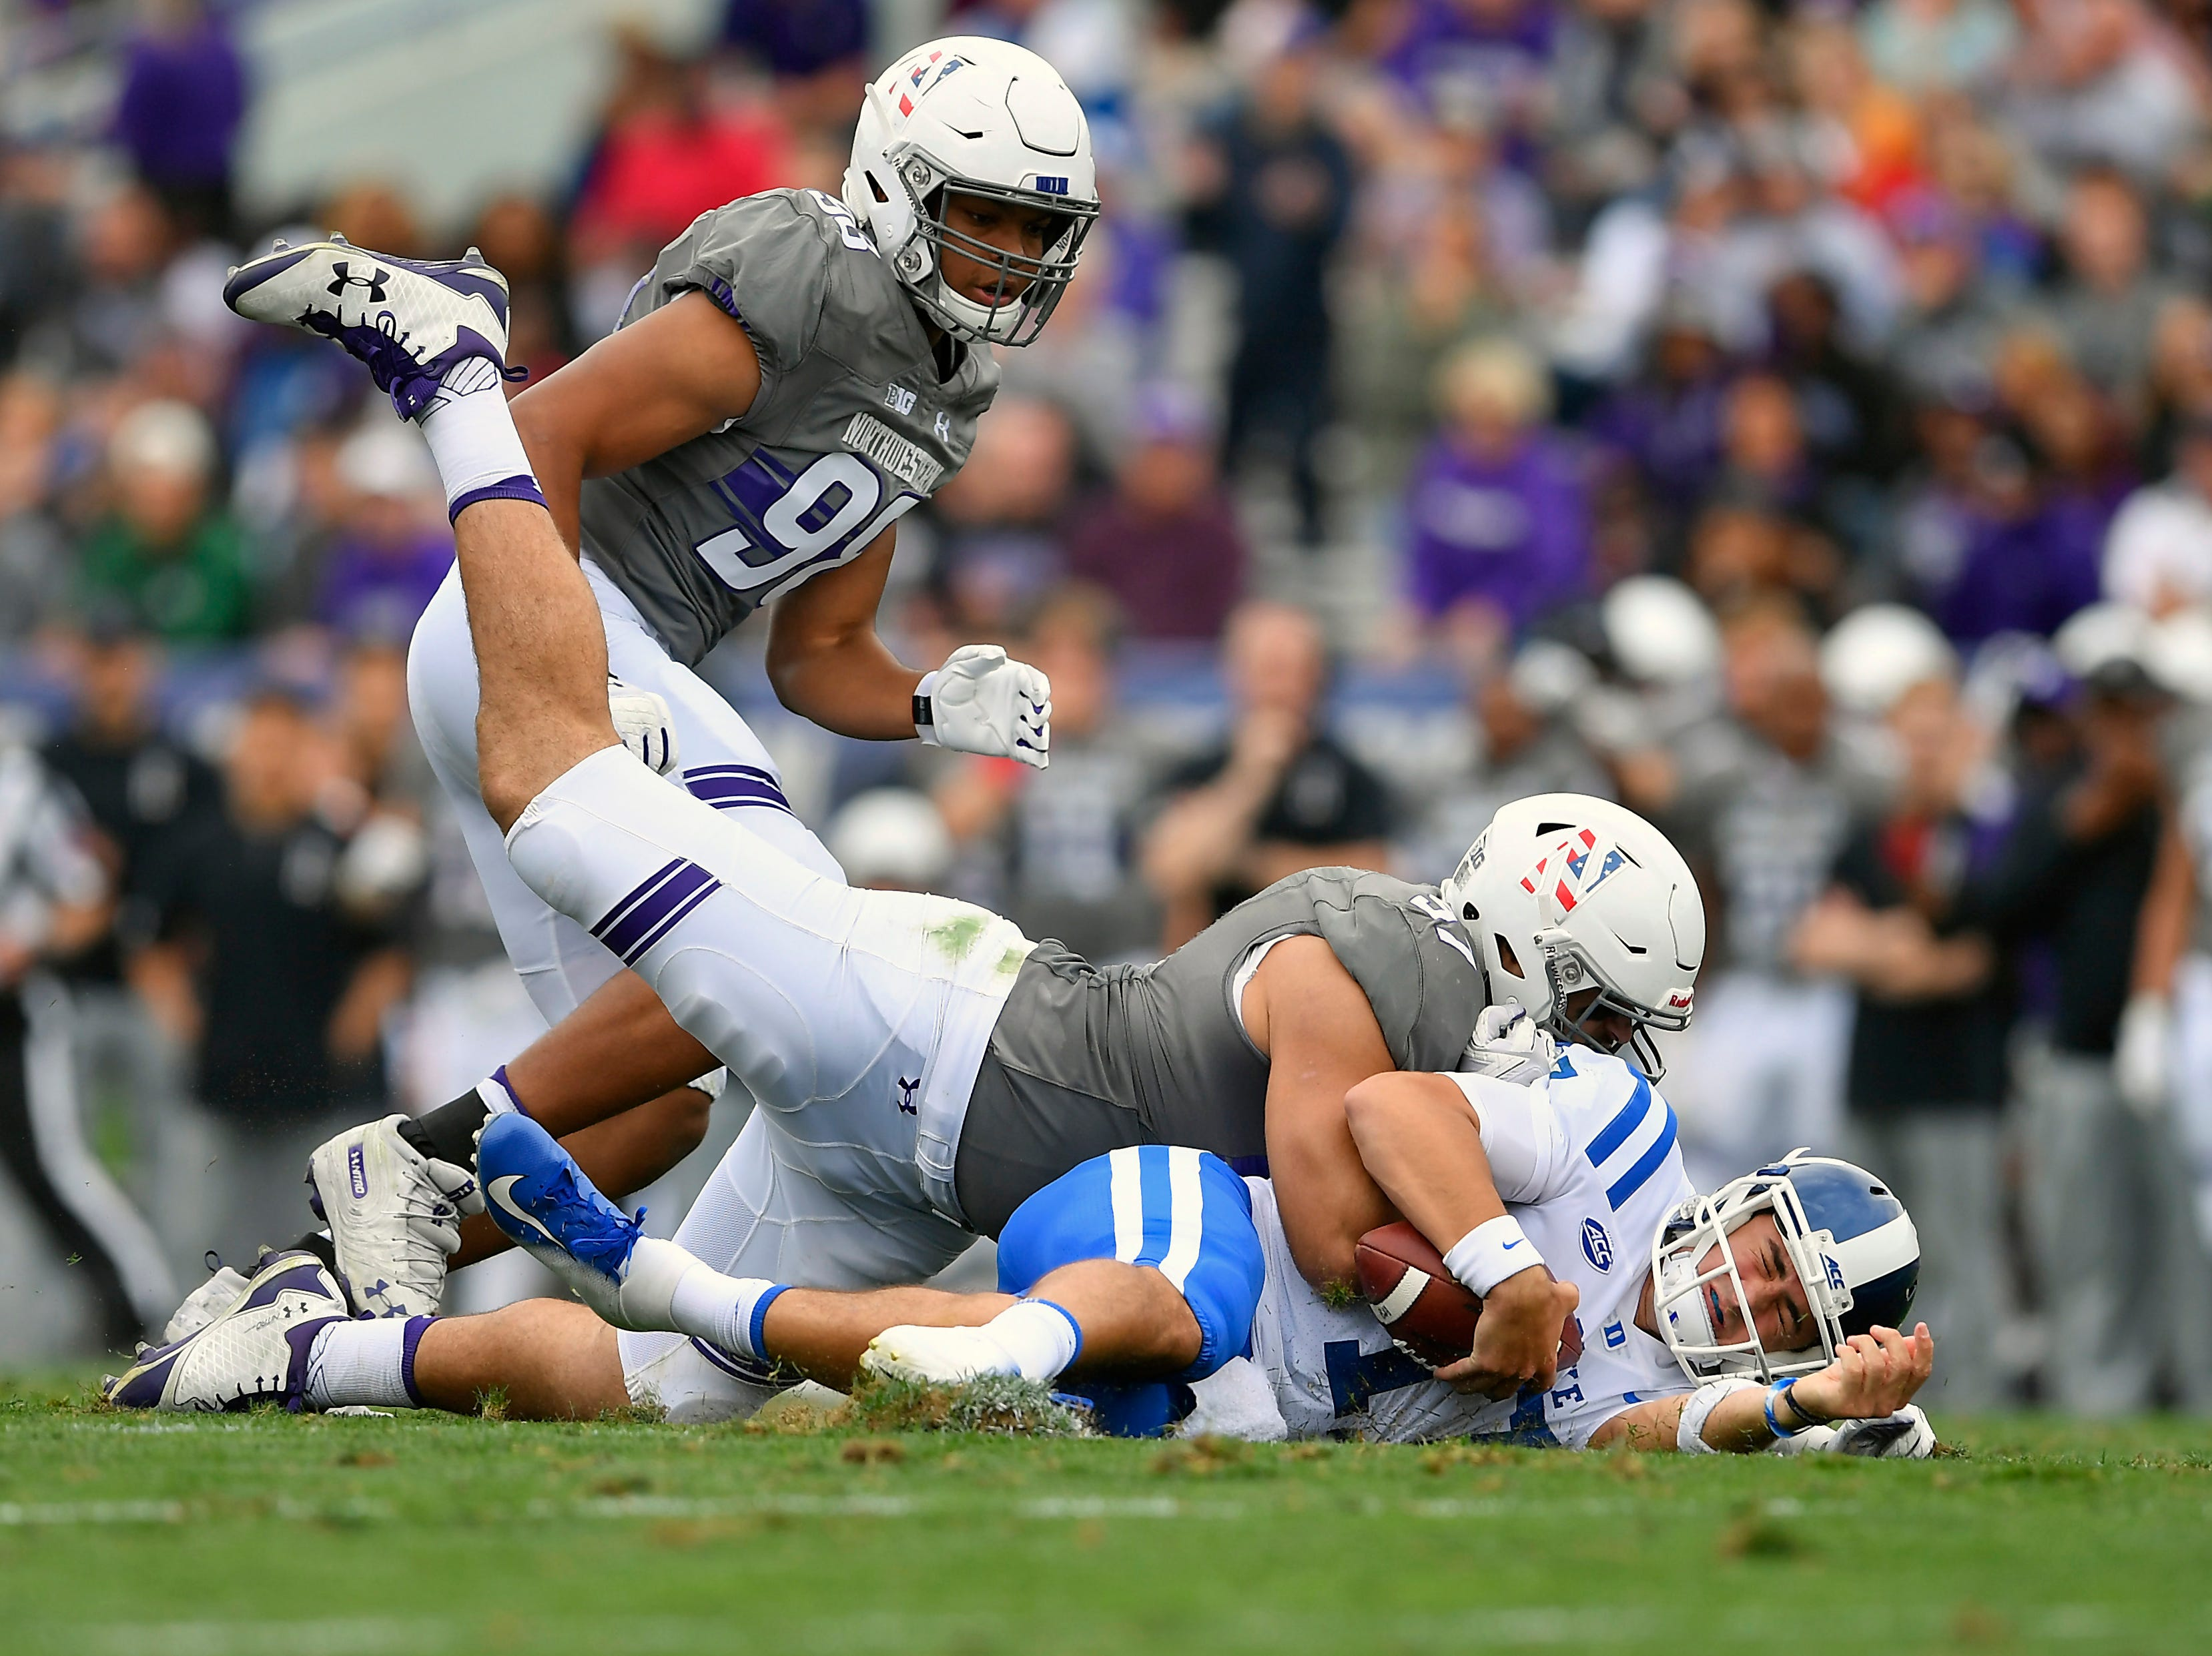 Northwestern Wildcats defensive lineman Joe Gaziano (97) sacks Duke Blue Devils quarterback Daniel Jones (17) in the second half at Ryan Field.